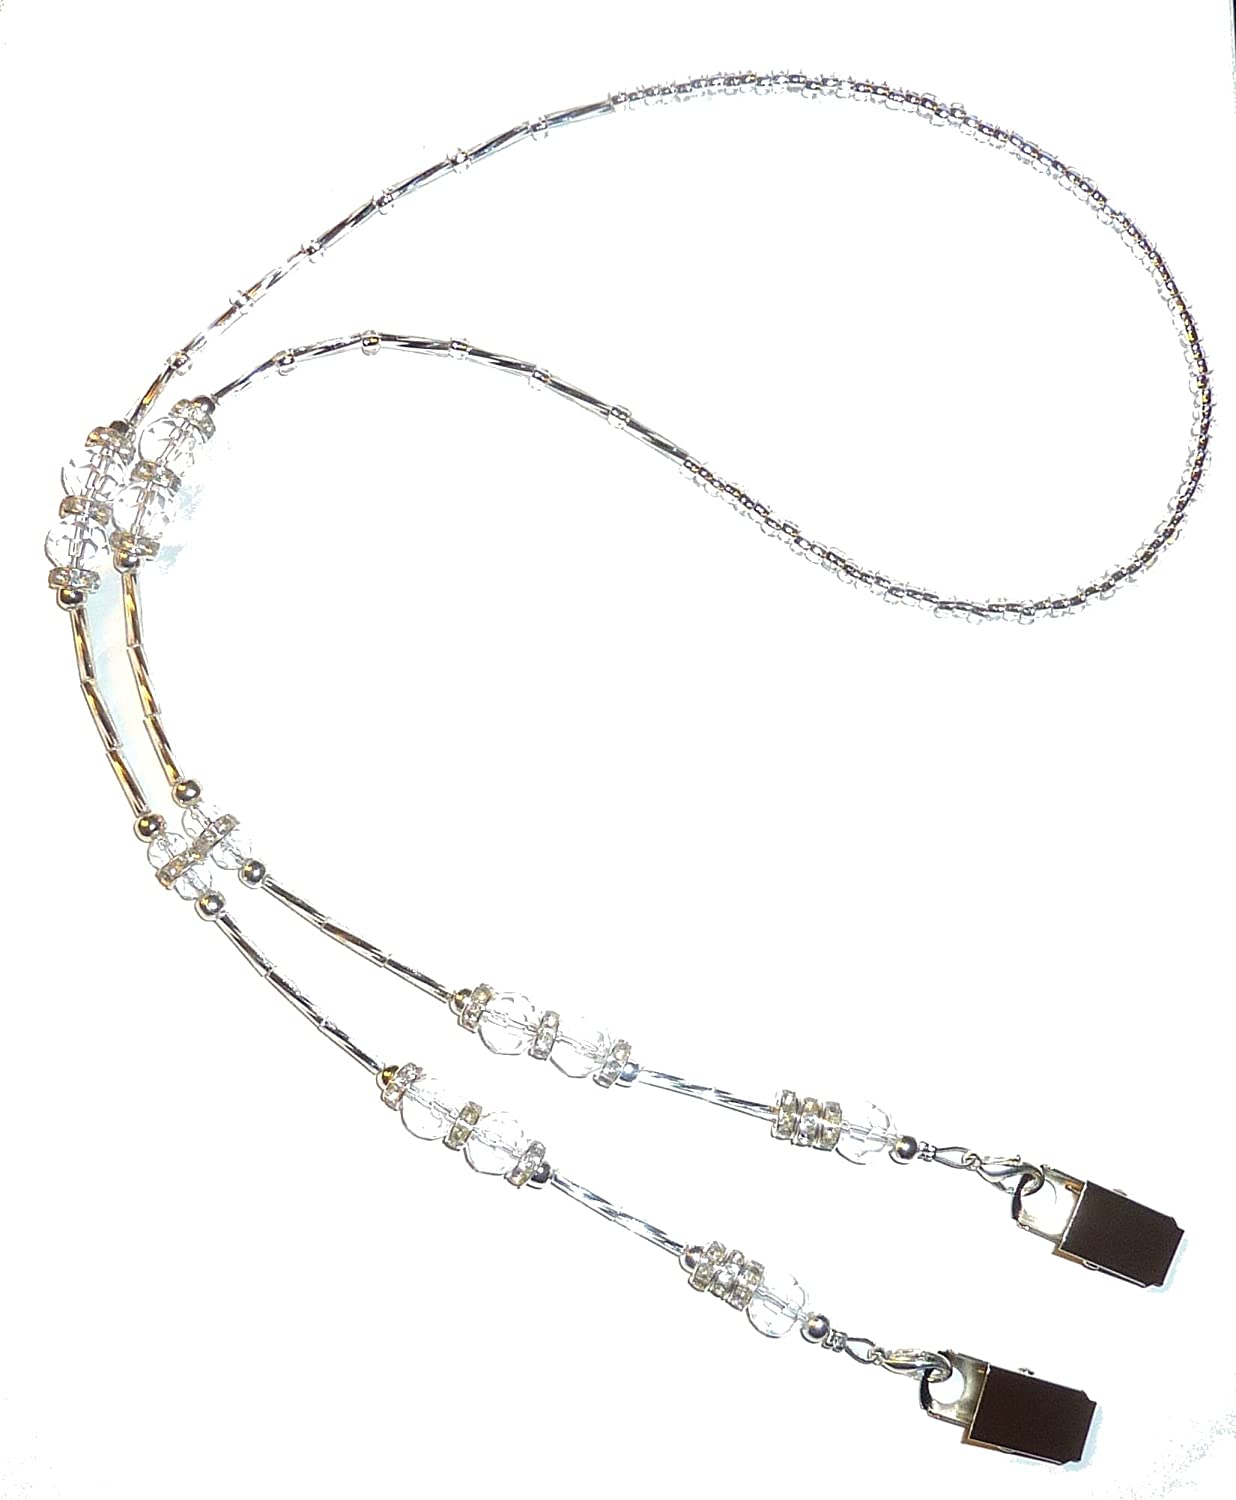 "Crystal Style Fashion Women's Beaded Lanyard 34"", Breakaway and Non Breakaway Available, for Keys, Badge Holder (Bulldog Clips - Crystal)"